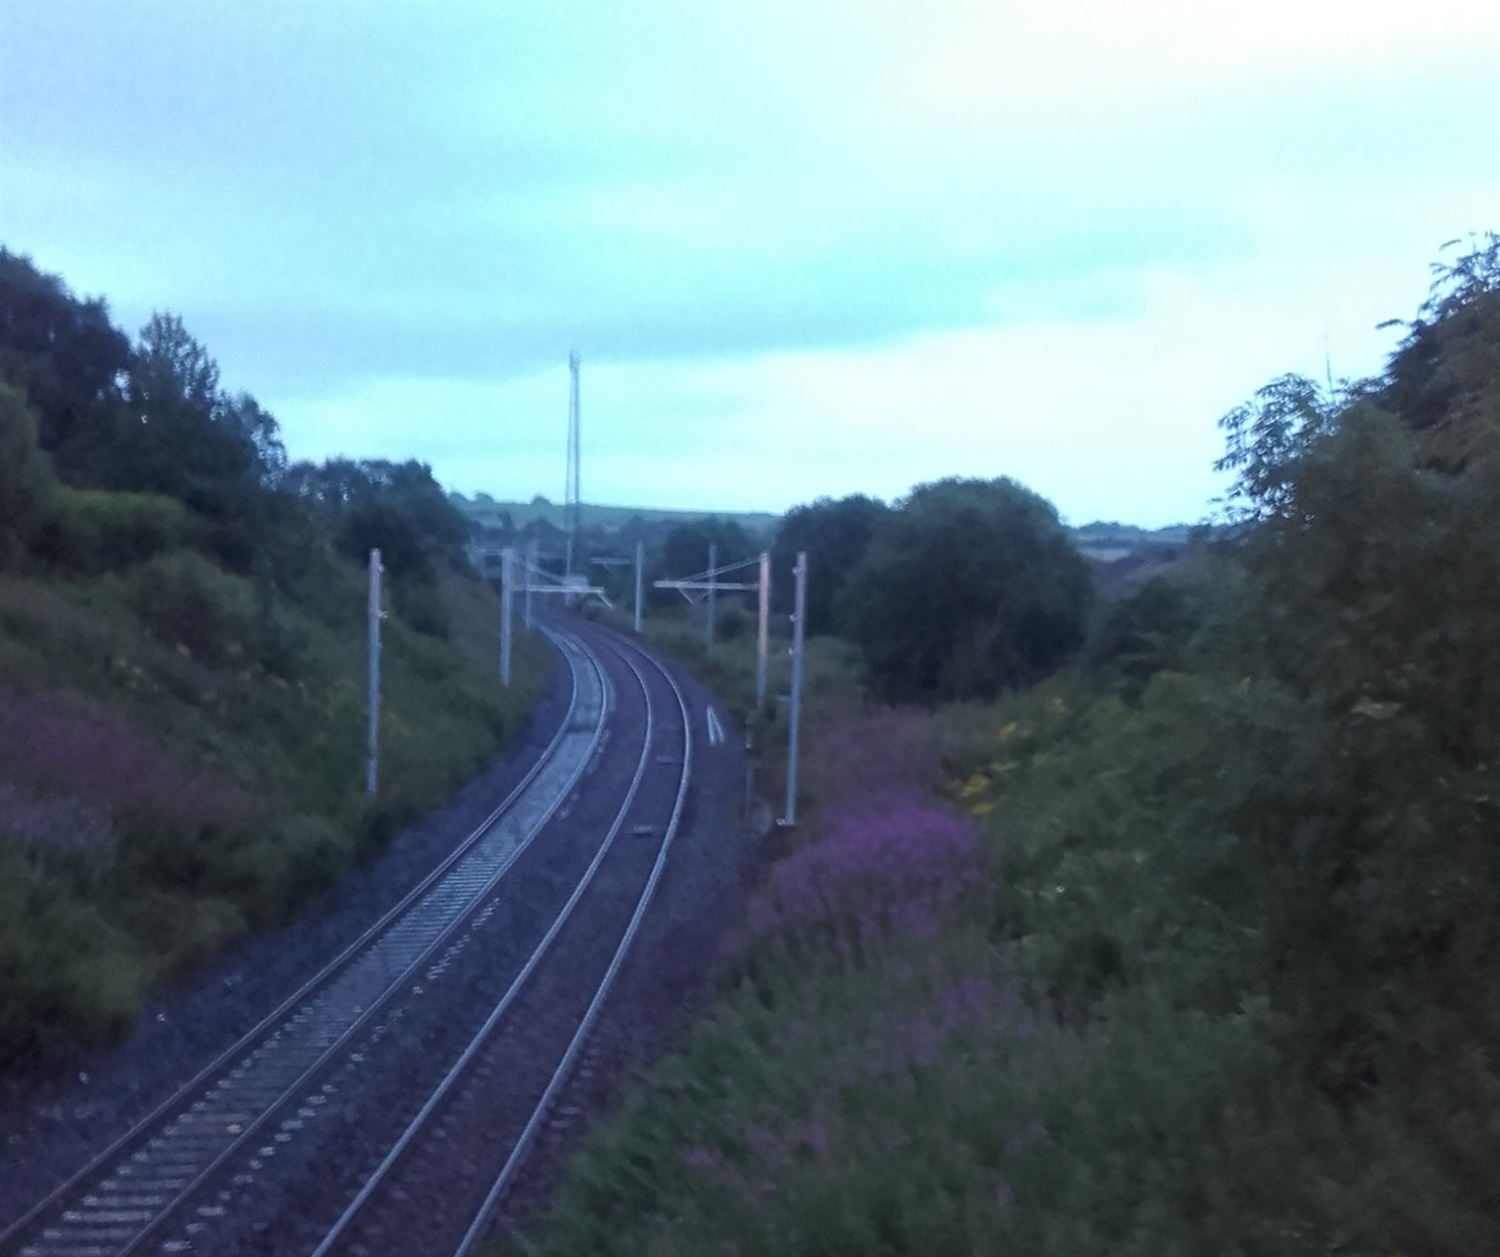 Further electrification work to begin on Shotts line as NR awards £11.6m contract